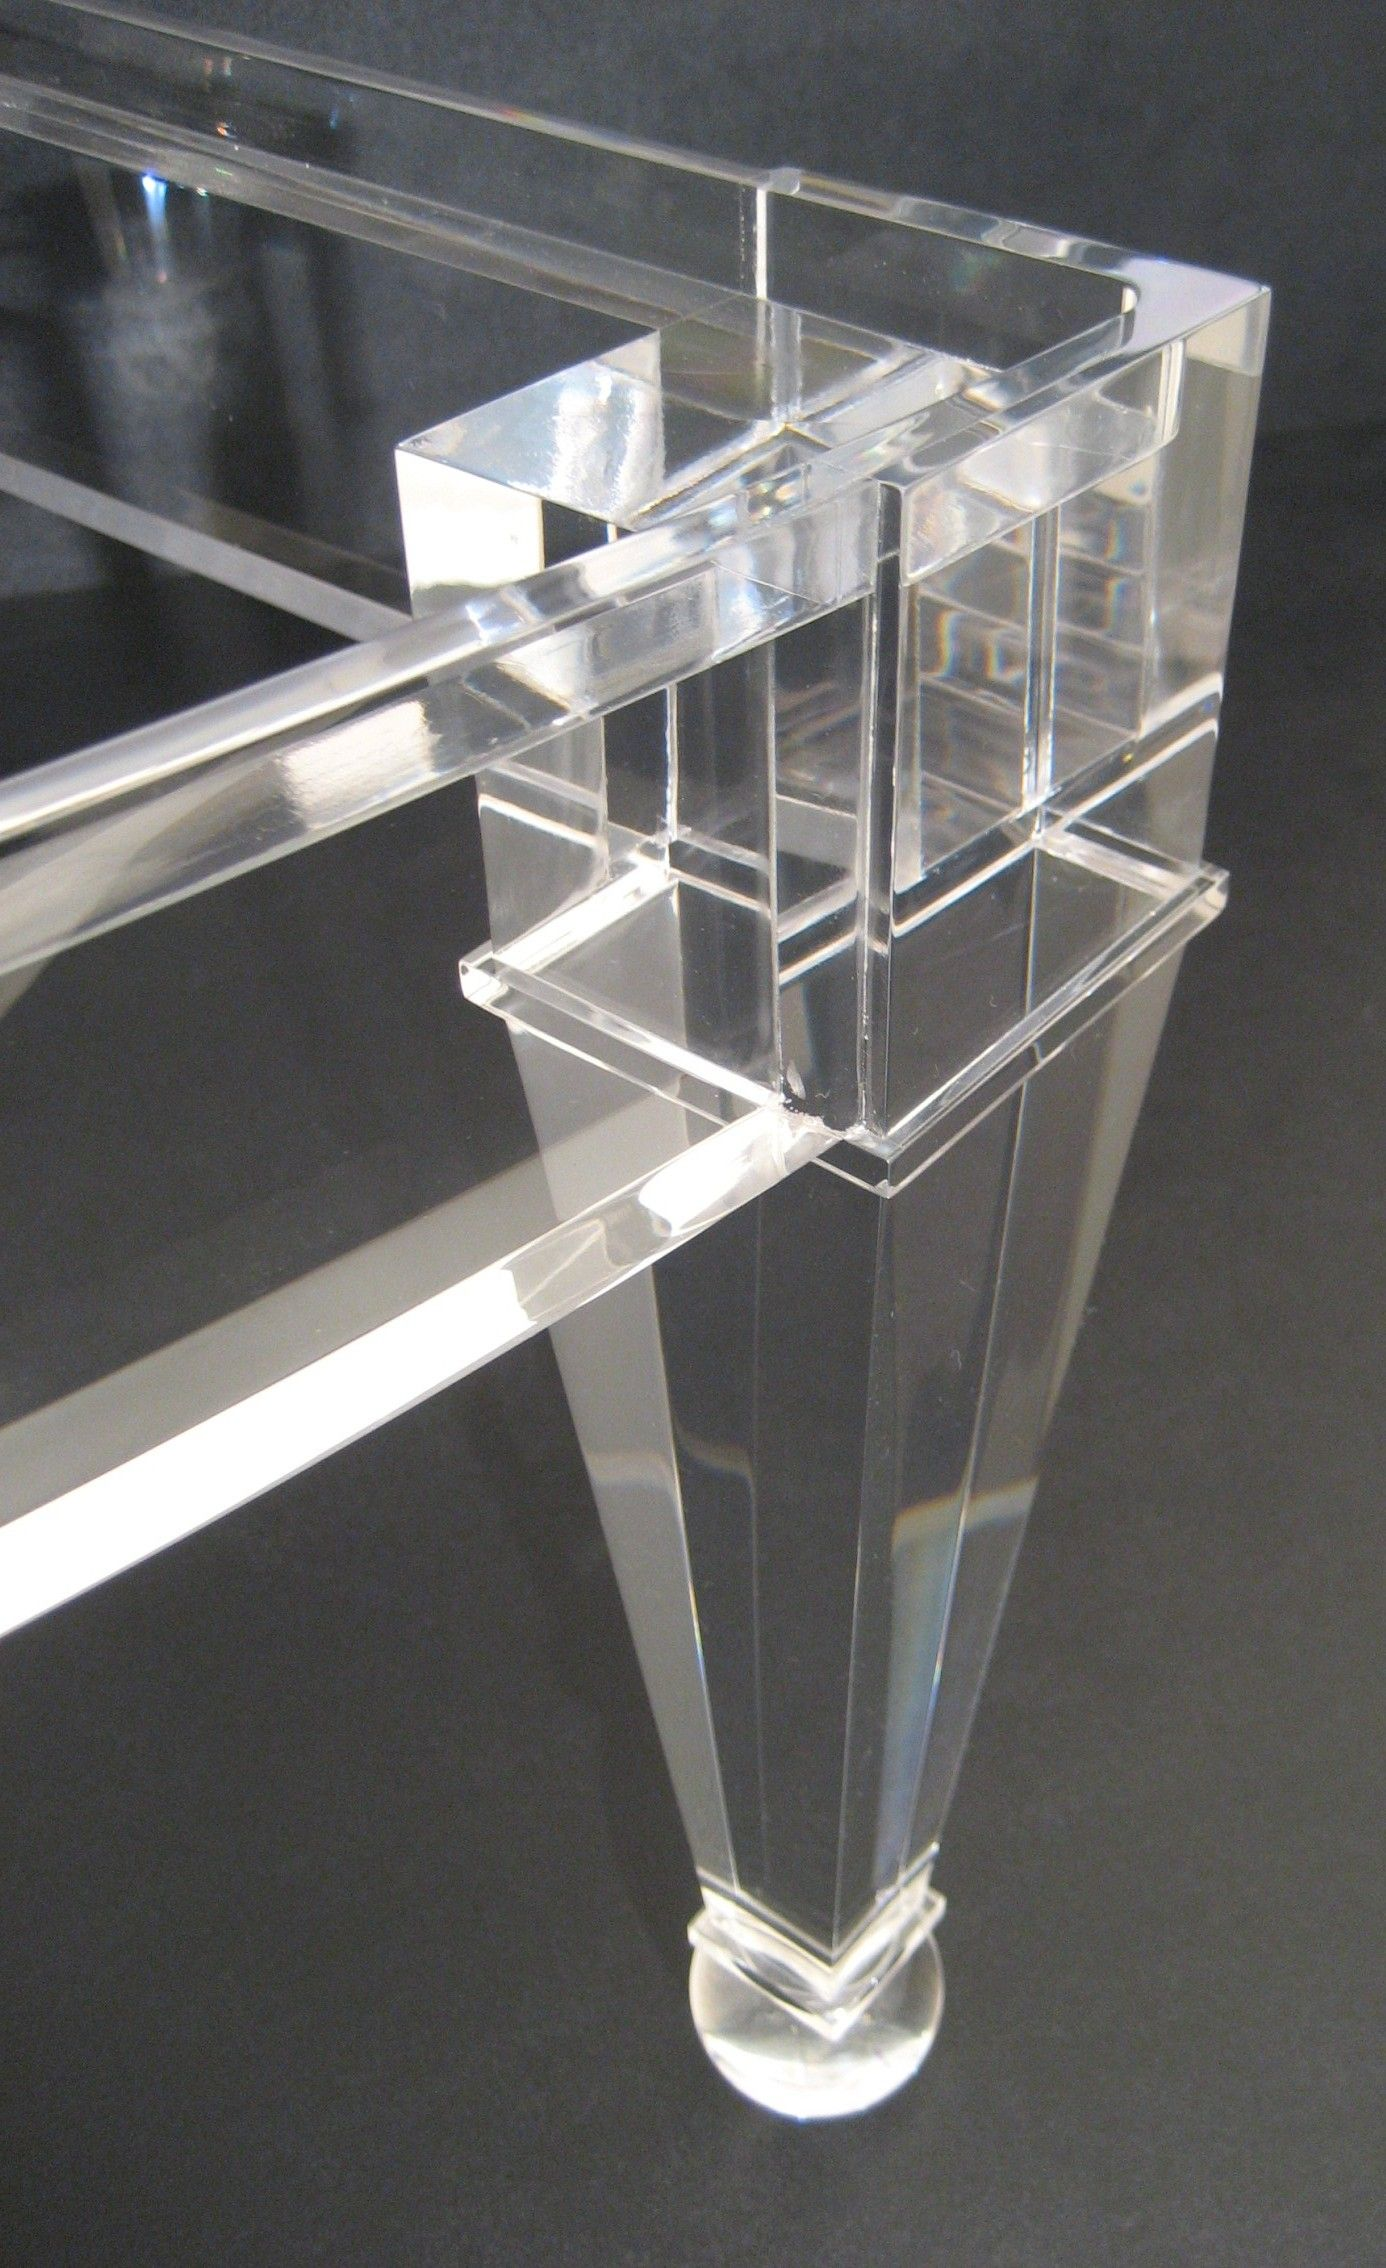 acrylic furniture legs. Then The Legs Were Carefully Glued To Rails Such That No Bubbles Or Other Imperfections. Acrylic FurnitureFurniture Furniture L